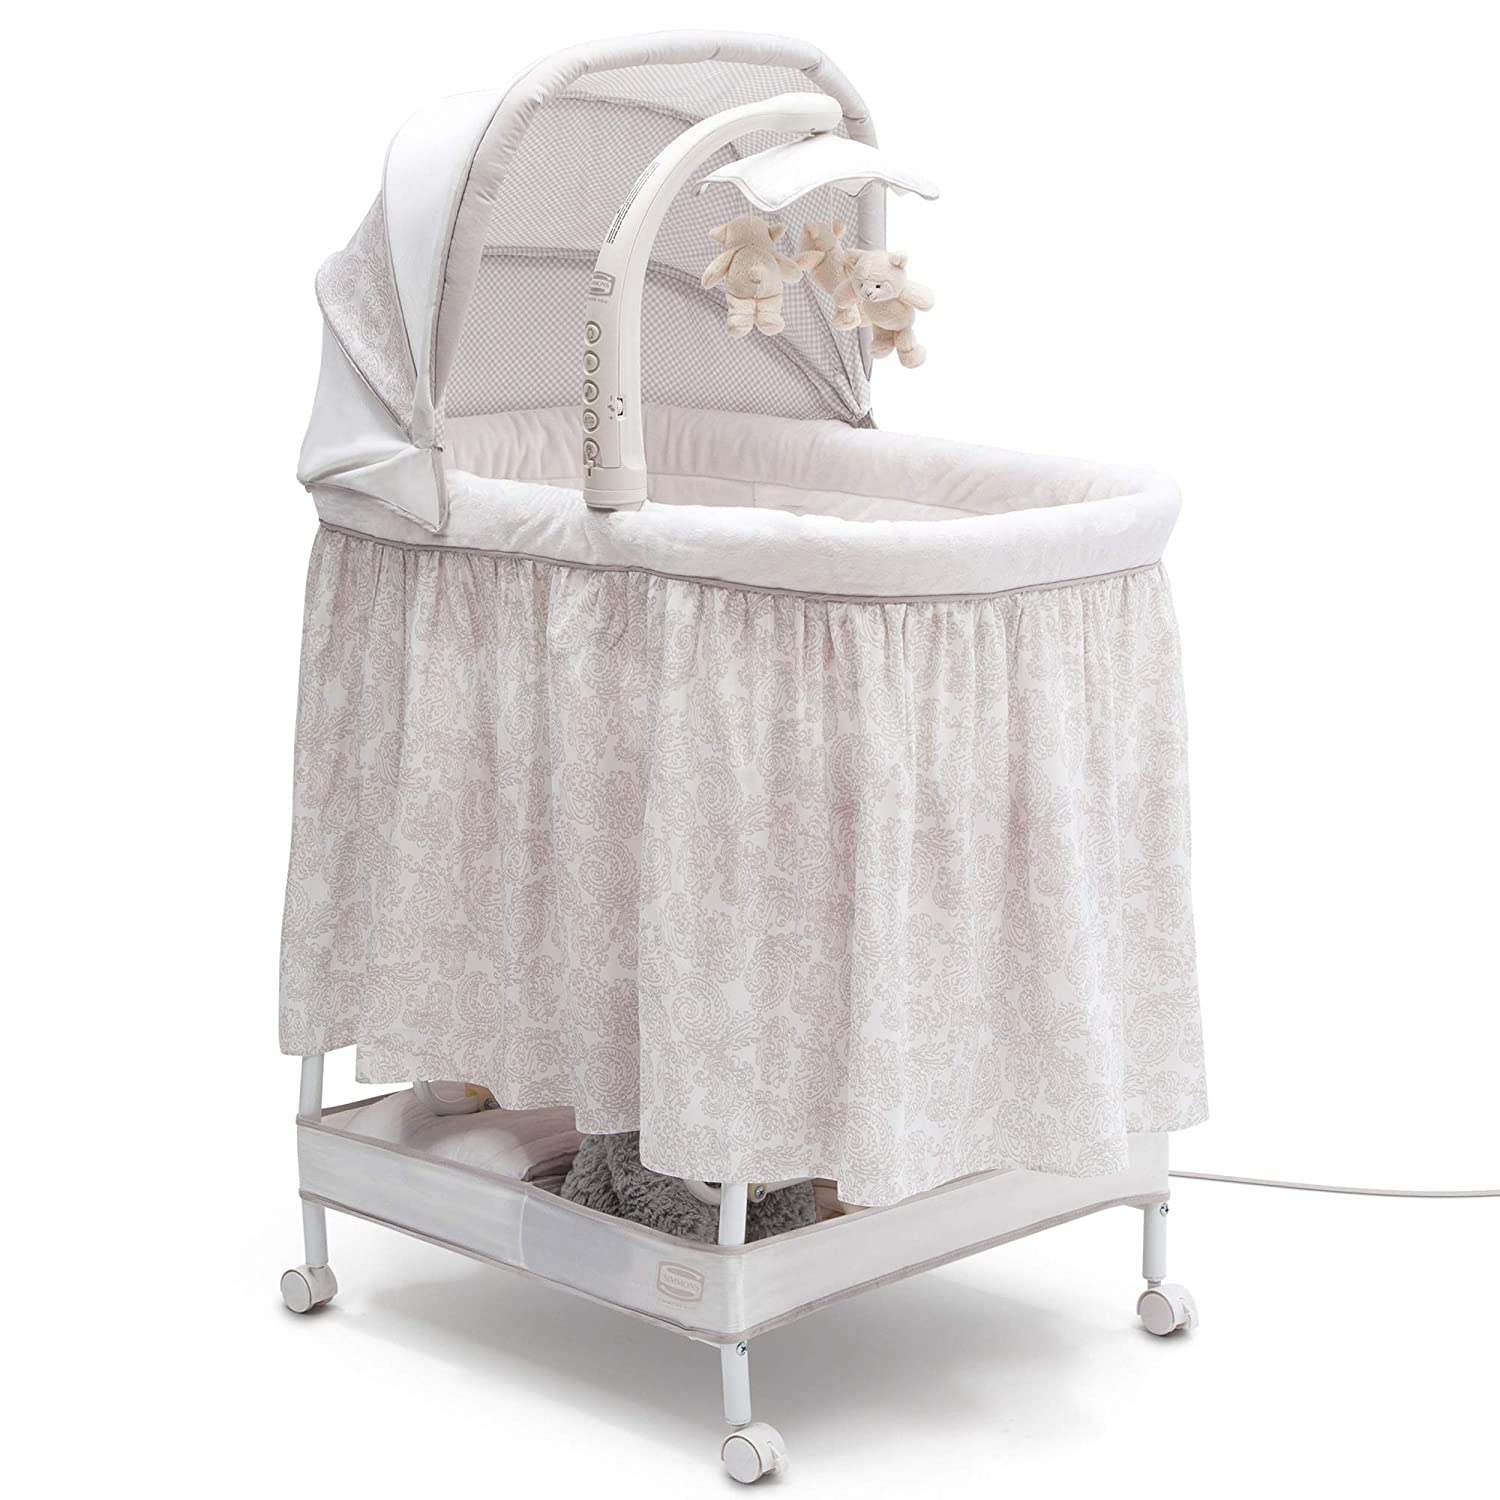 Simmons Kids Silent Auto Gliding Deluxe Bassinet Embossed Paisley, Ivory with Taupe Delta Enterprise Corp - PLA 701305-2282